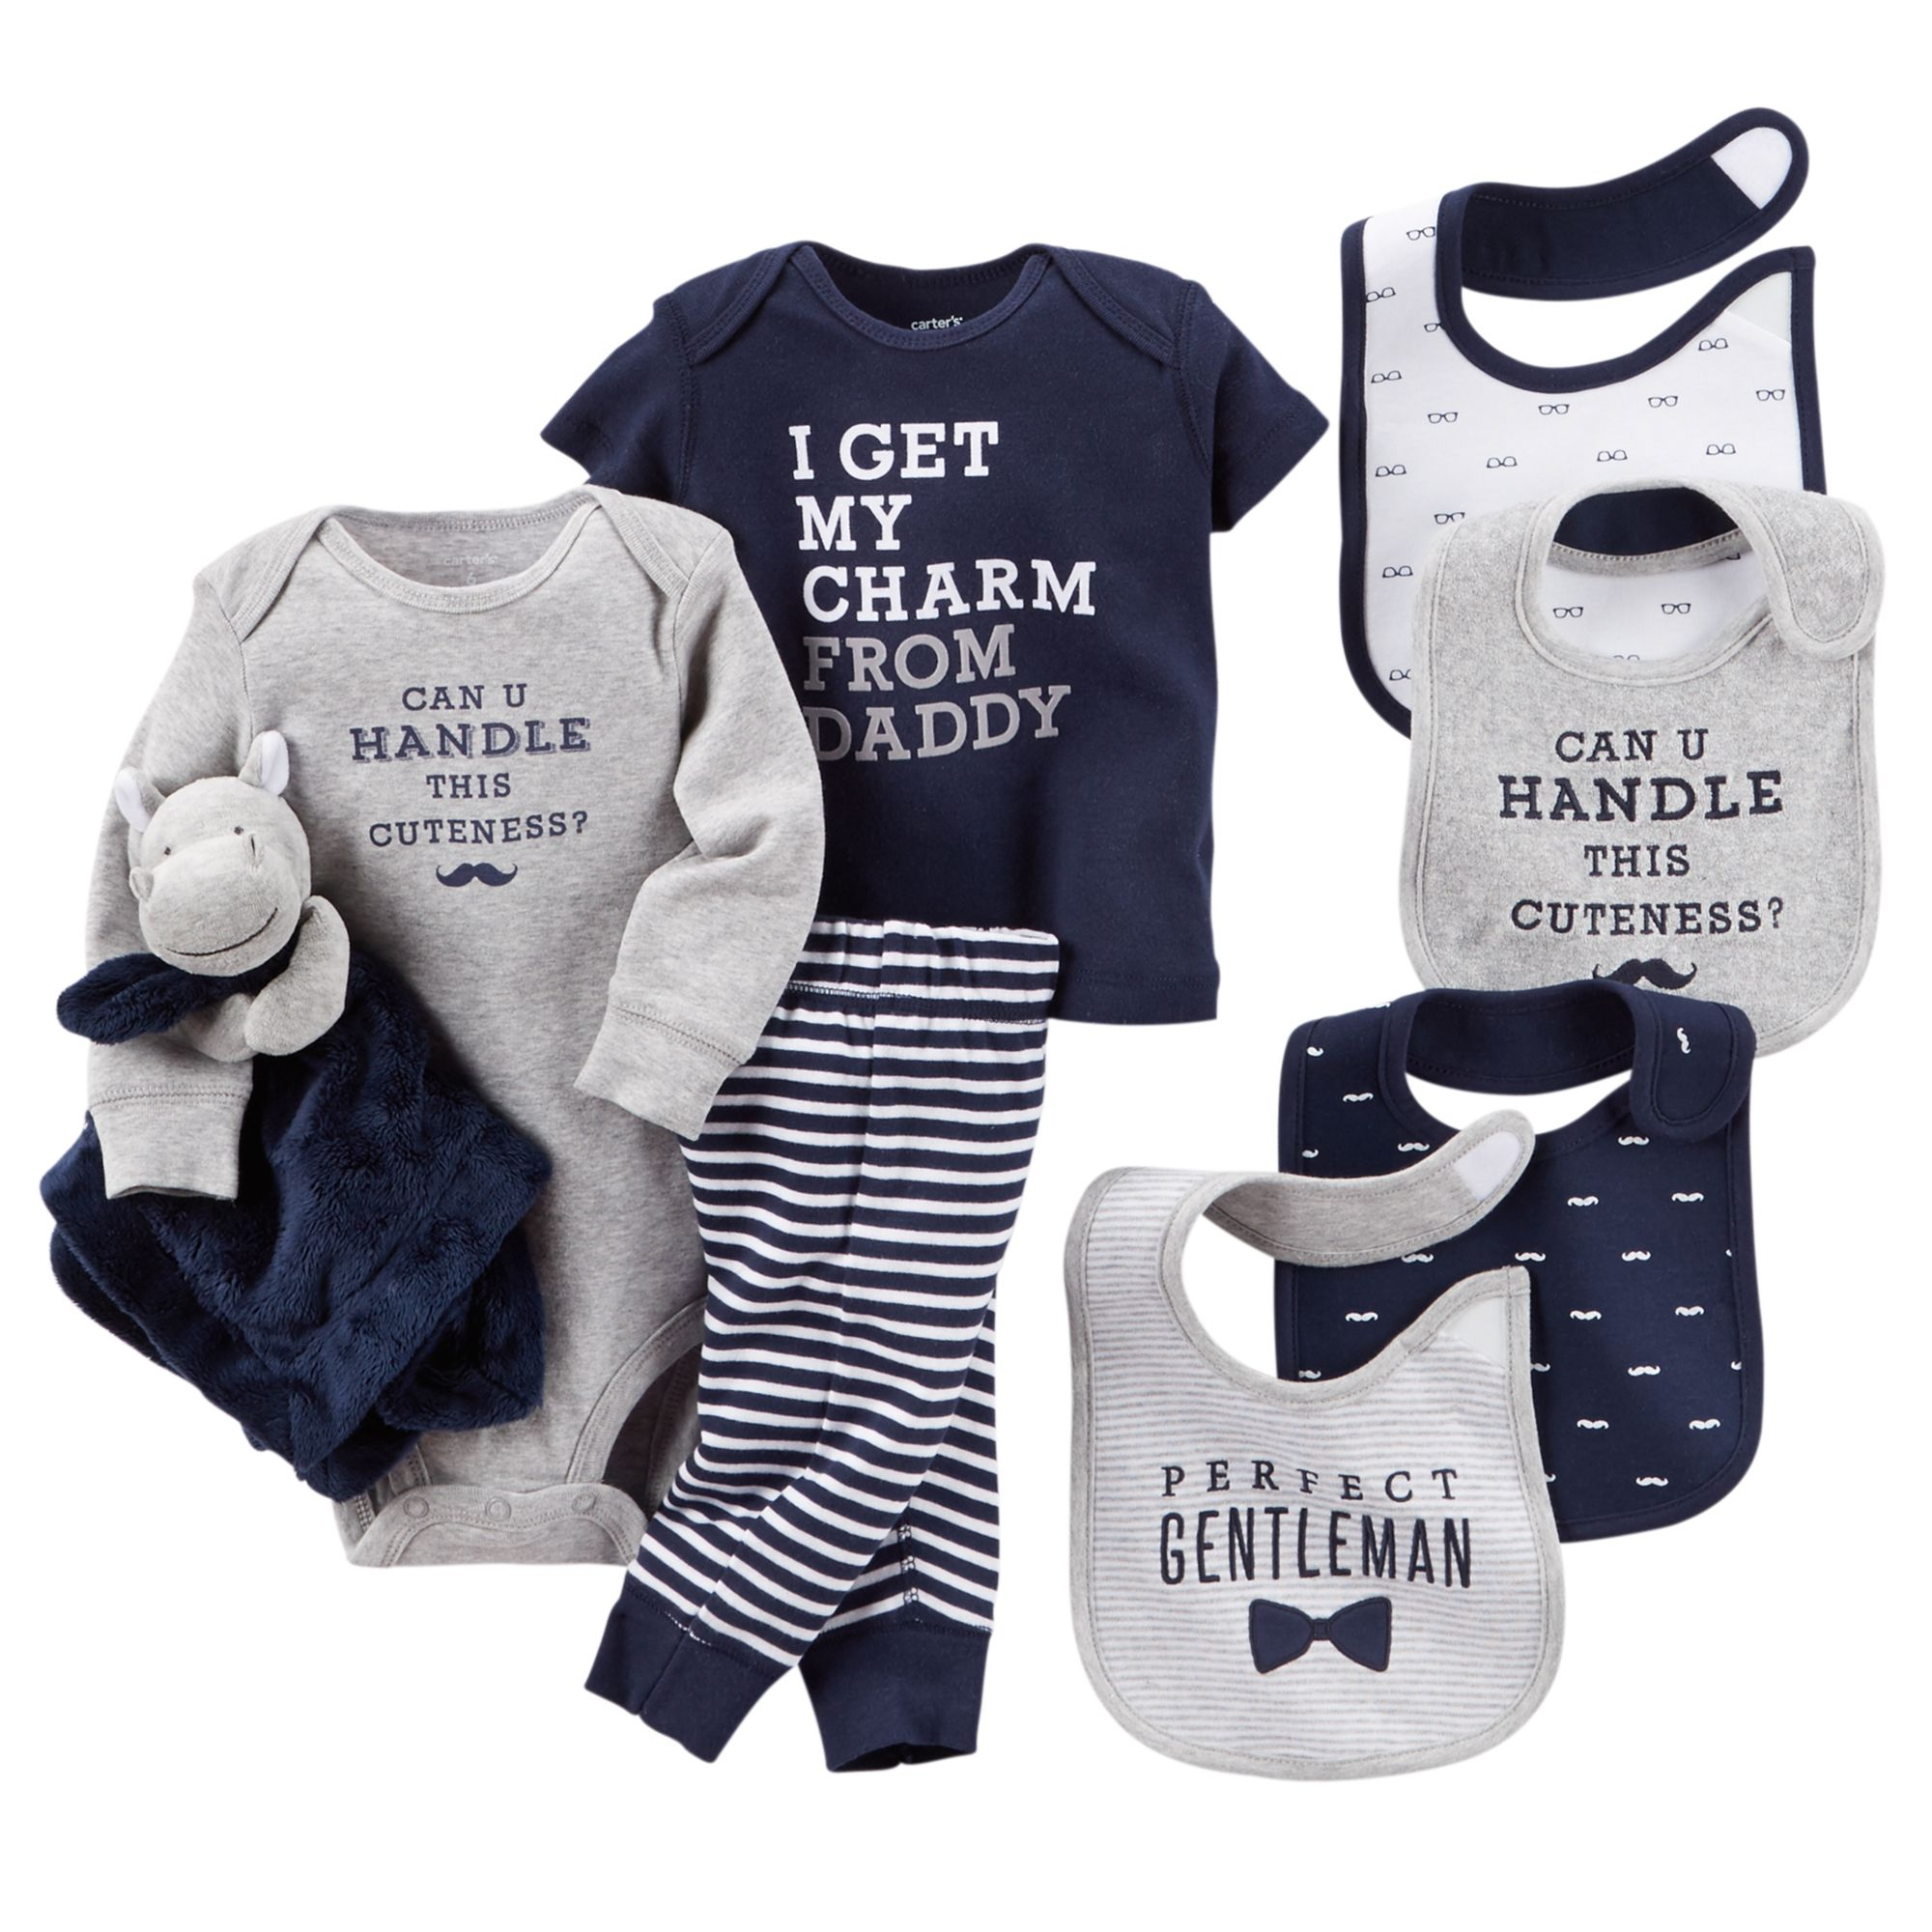 This bundle es with lots of bibs Your perfect gentleman will